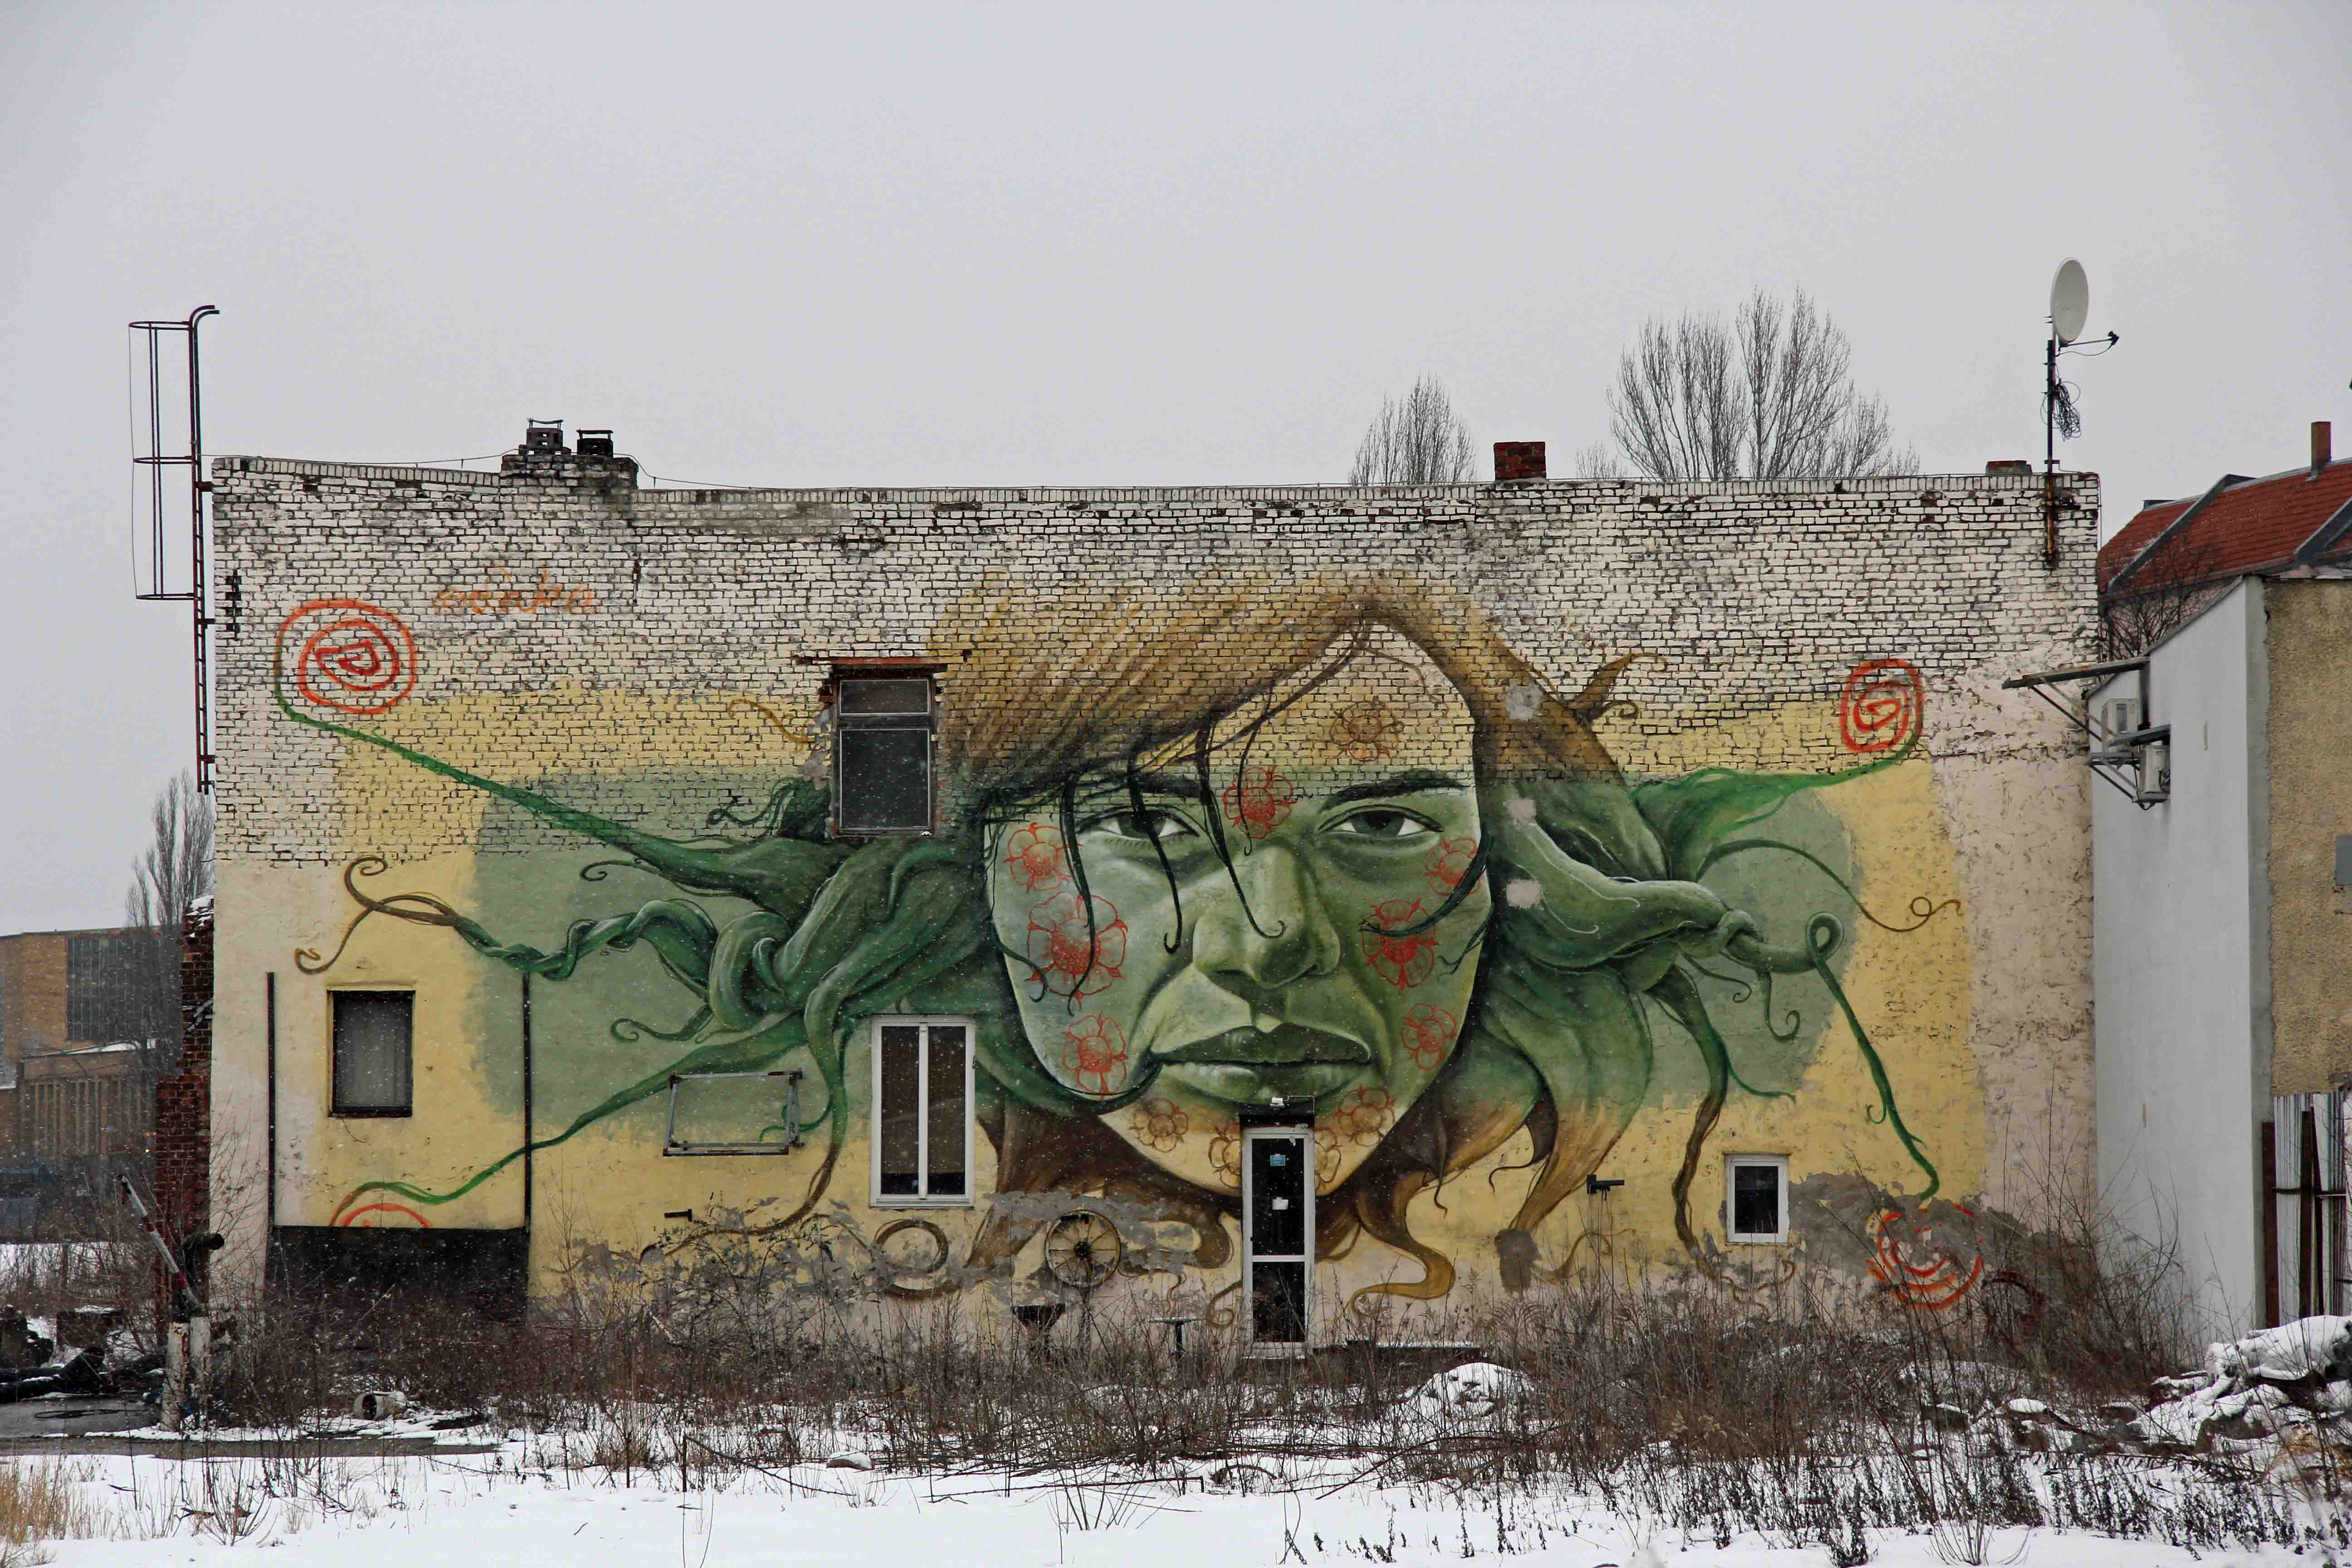 Green Goddess - Street Art by Lake in Berlin Schöneweide